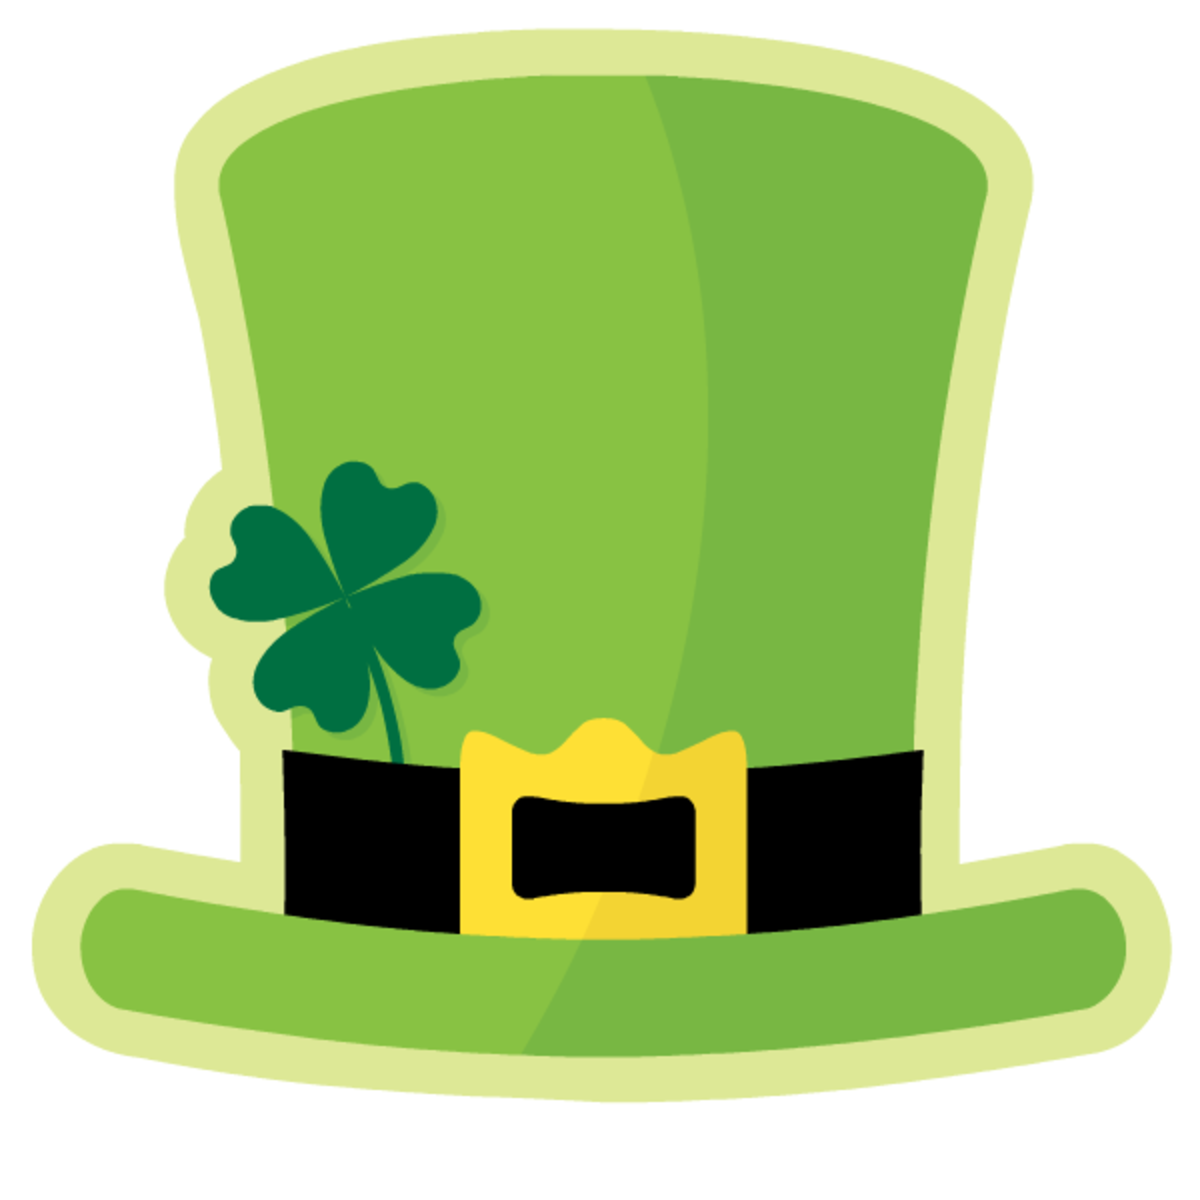 Leprechaun's green St. Patrick's Day top hat clip art